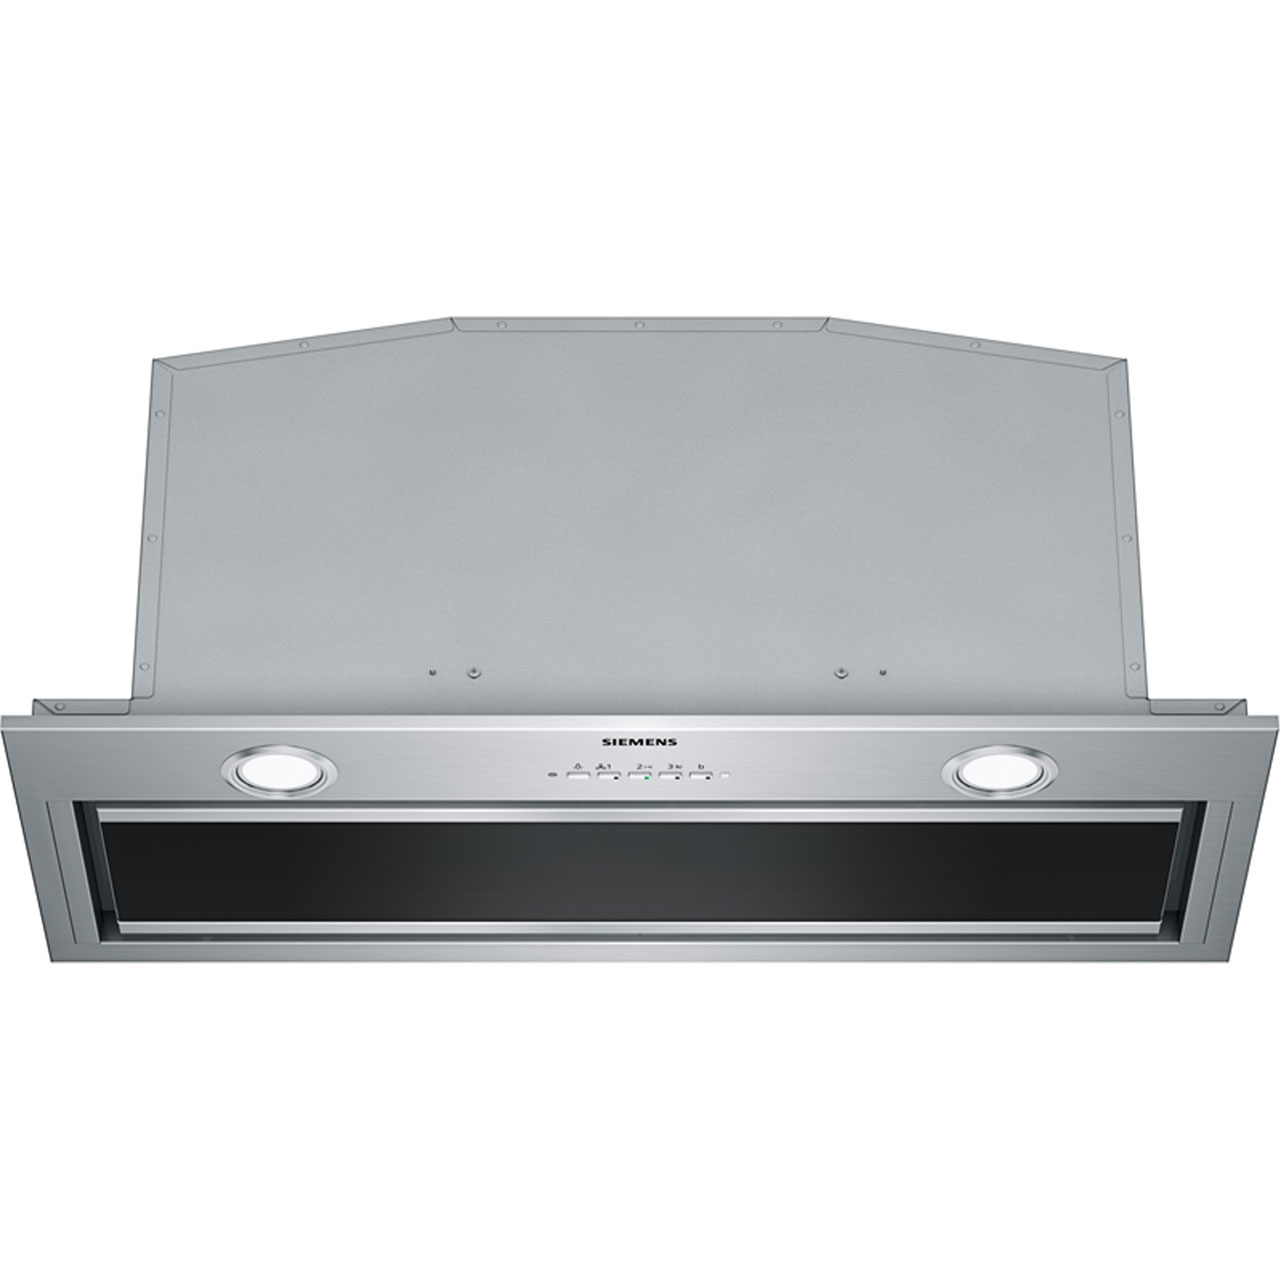 Siemens IQ700 LB79585GB Integrated Cooker Hood in Stainless Steel